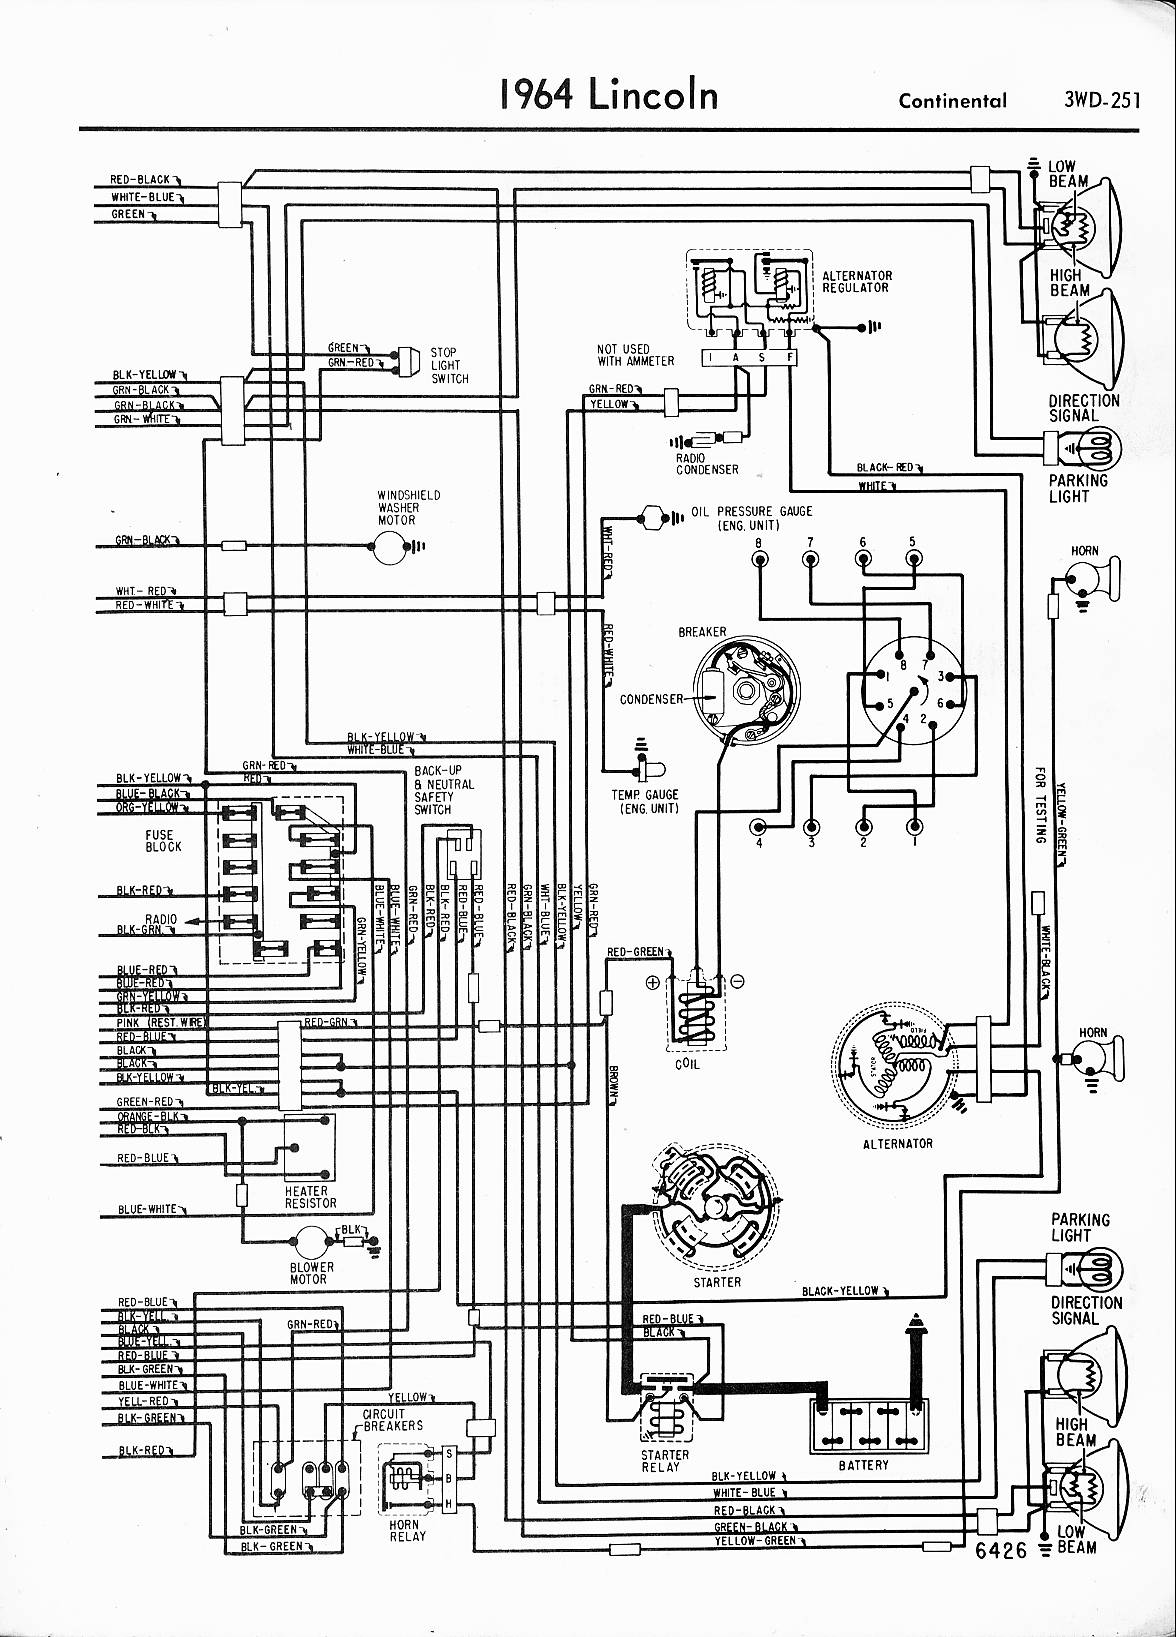 1964 Mercury Fuse Box Diagram Electronic Wiring Diagrams 66 Chevy Under Hood Gto Auto Electrical F350